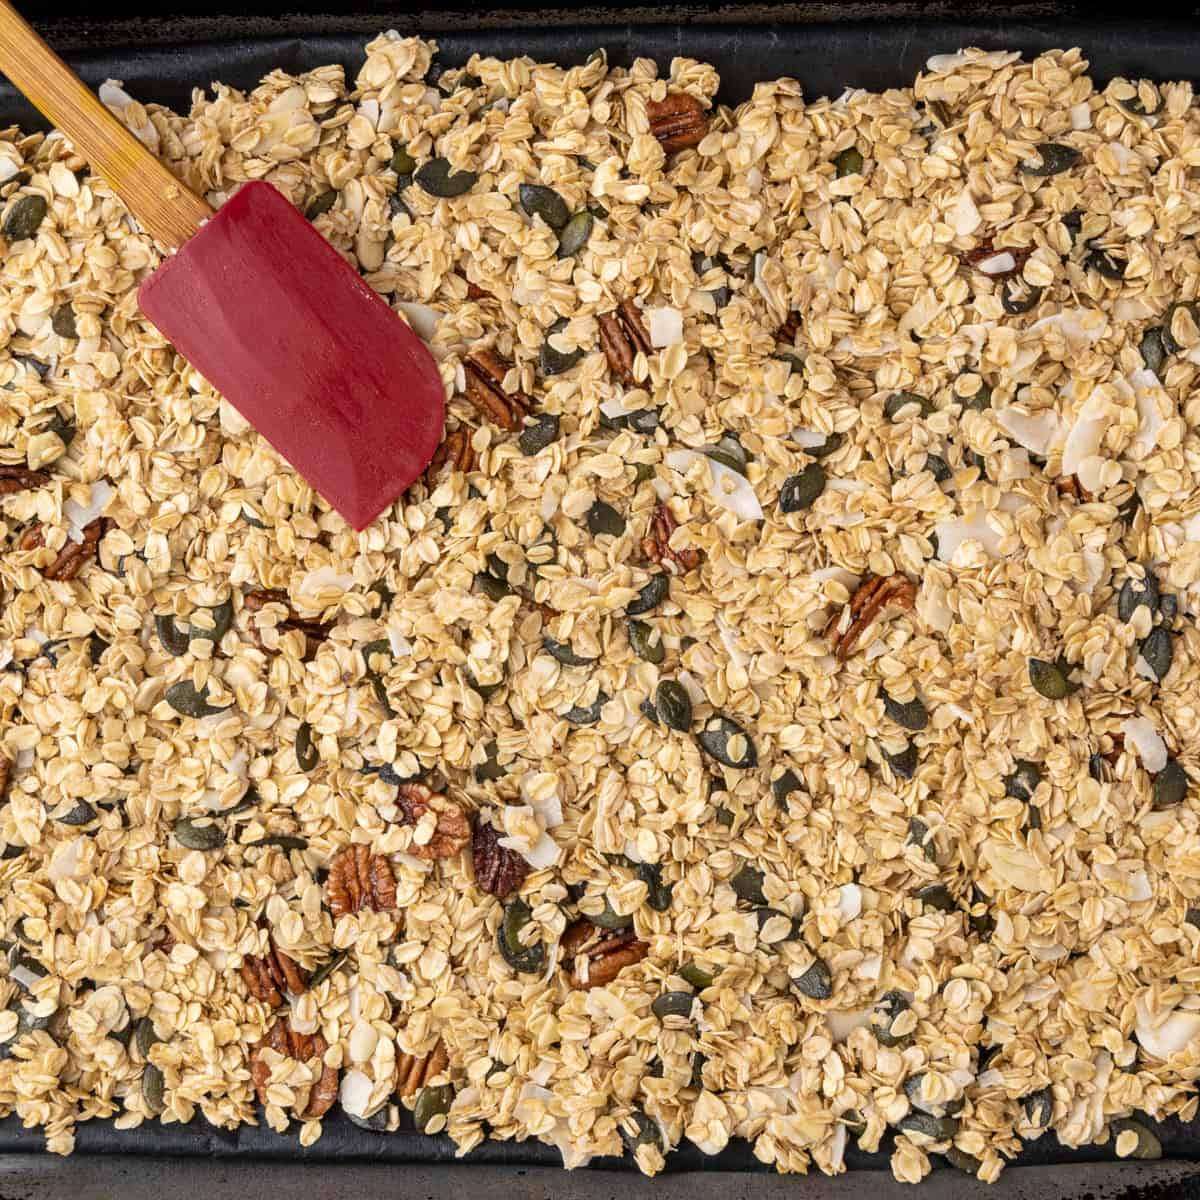 The granola mixture gets spread out on a baking tray.